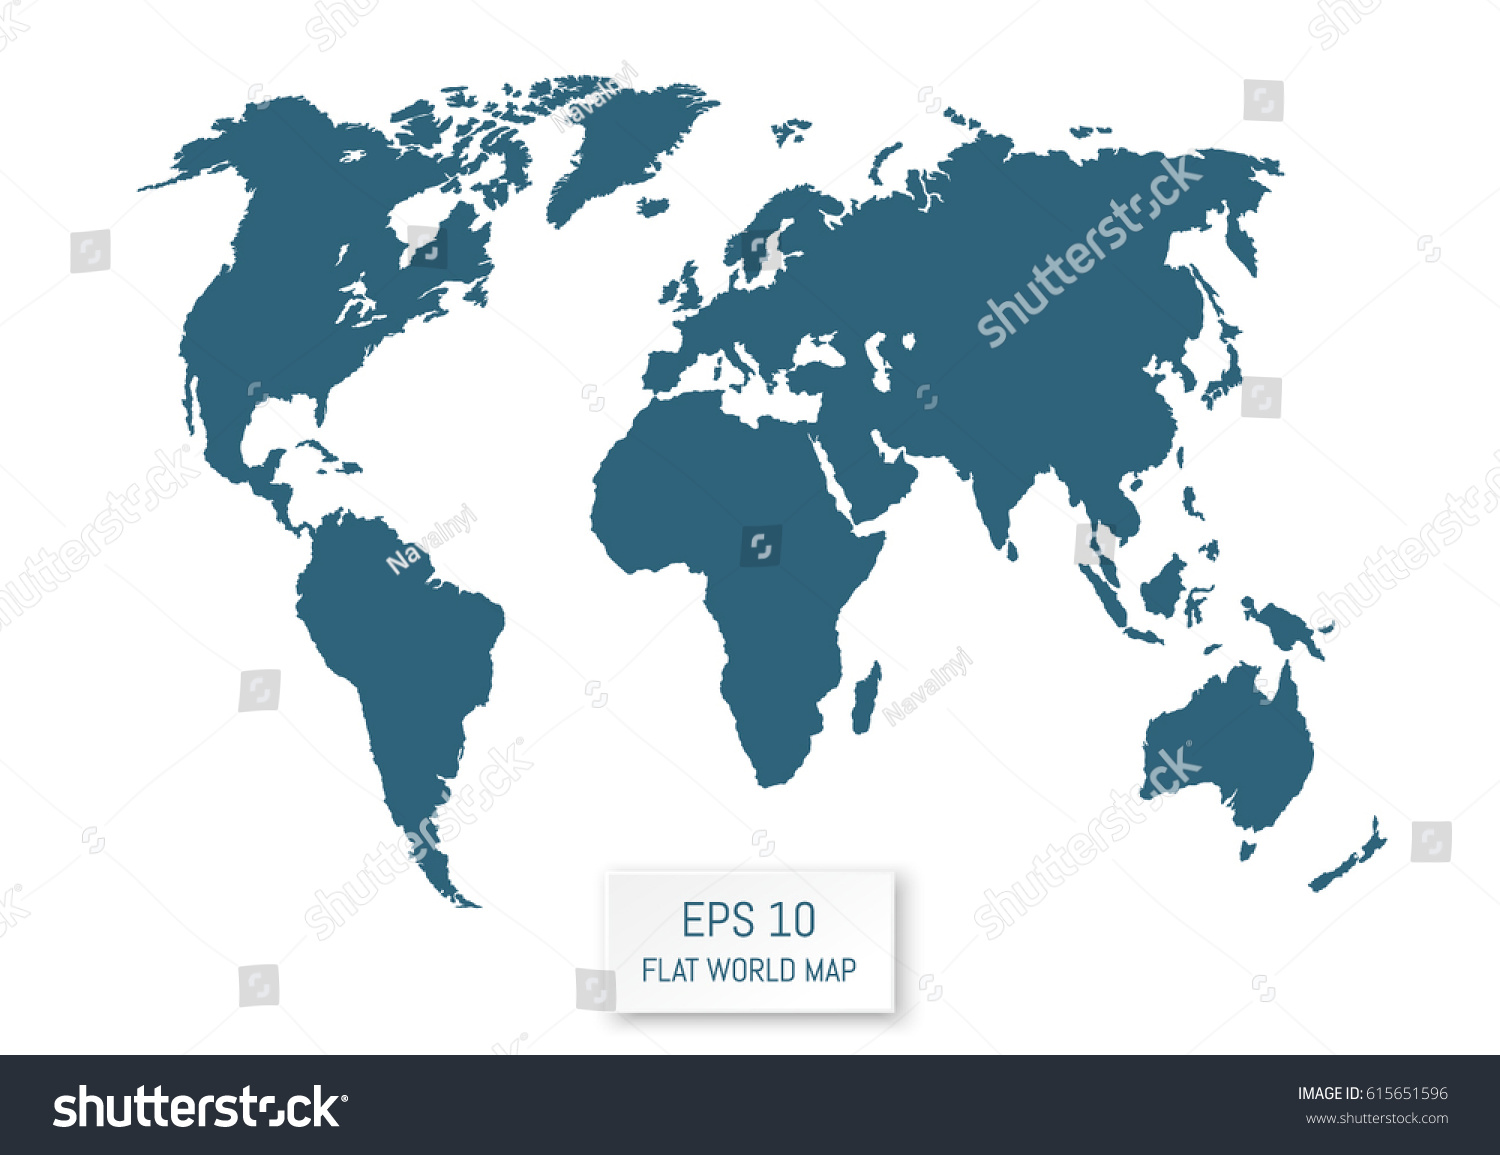 Flat world map silhouettes on white stock vector hd royalty free flat world map silhouettes on white background template for your design works vector gumiabroncs Choice Image